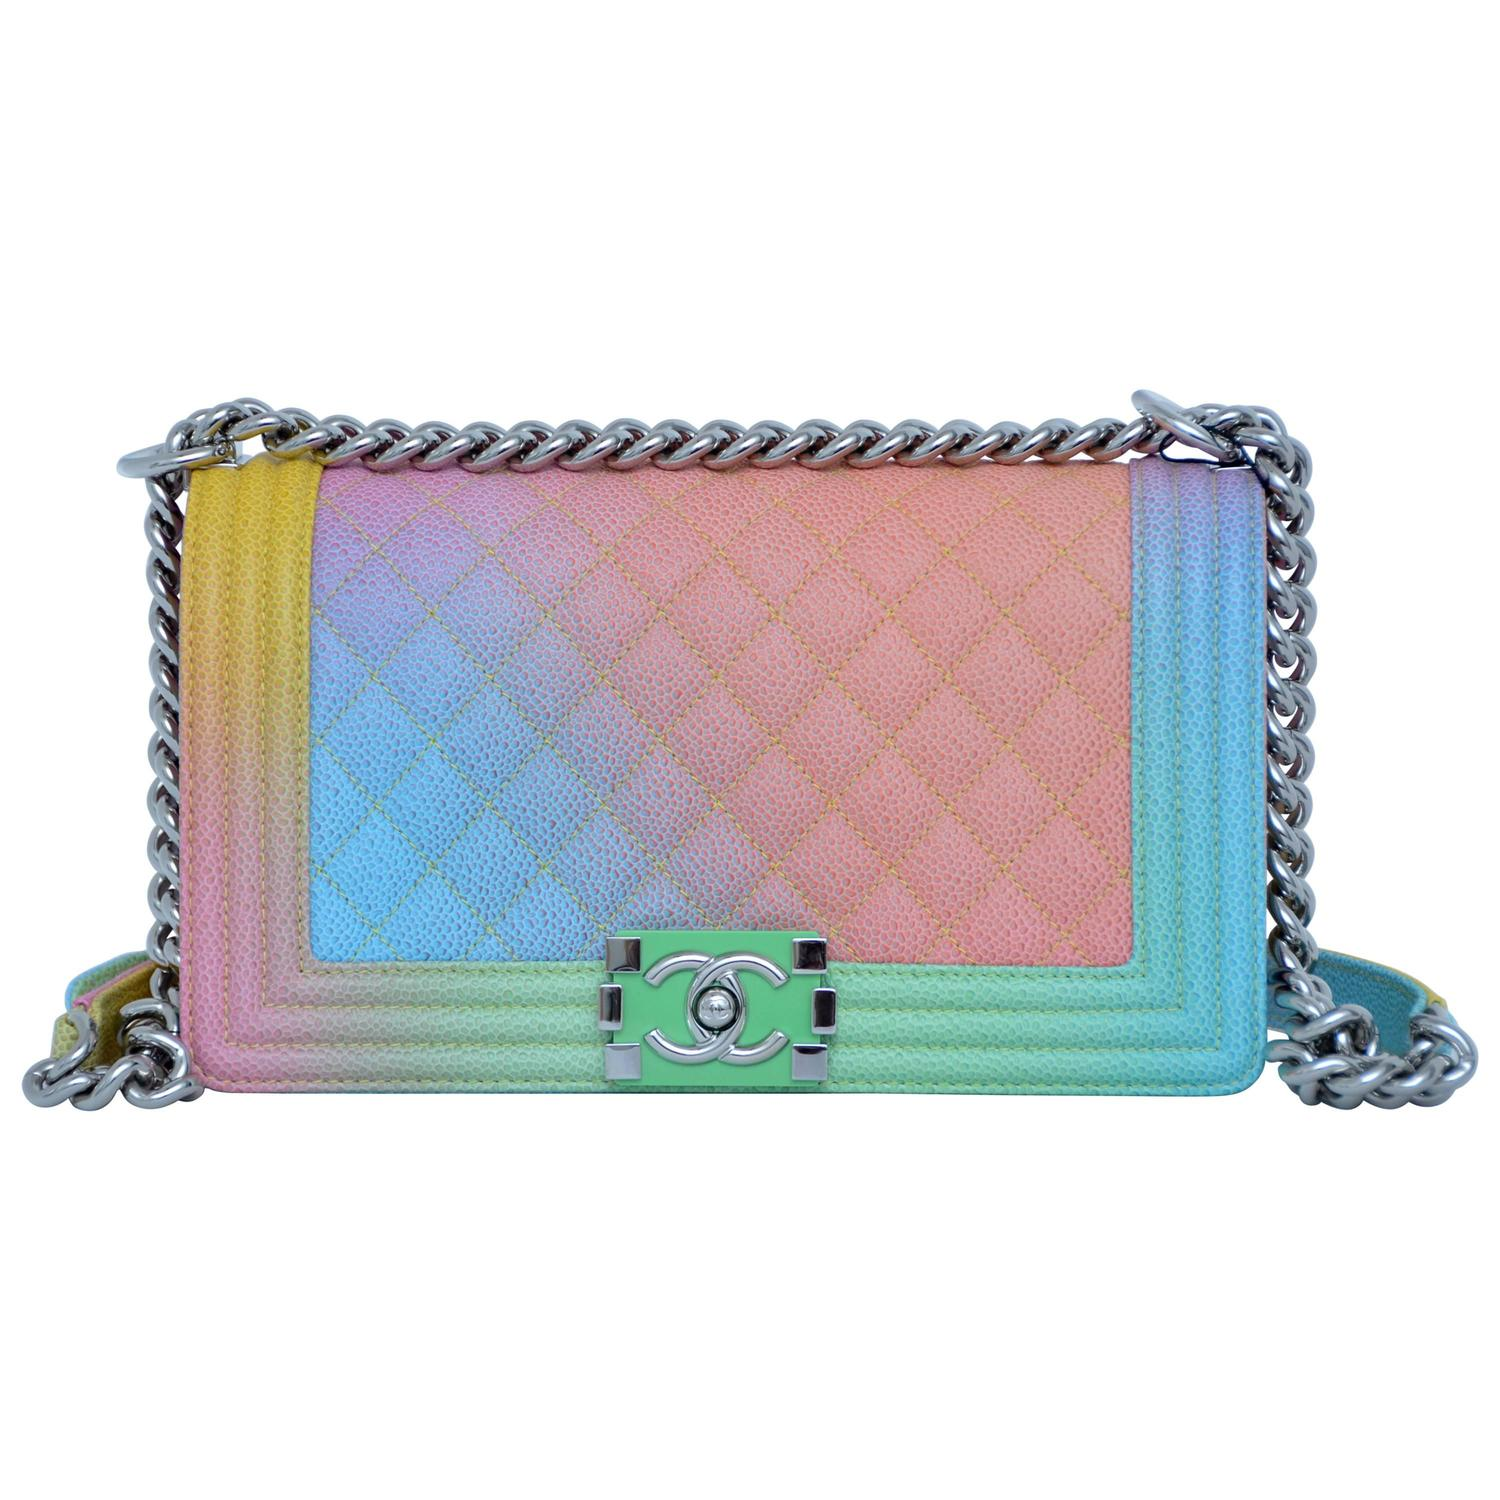 Chanel Rainbow Cuba Boy Handbag Medium 17 Crossbody New Sold Out For At 1stdibs